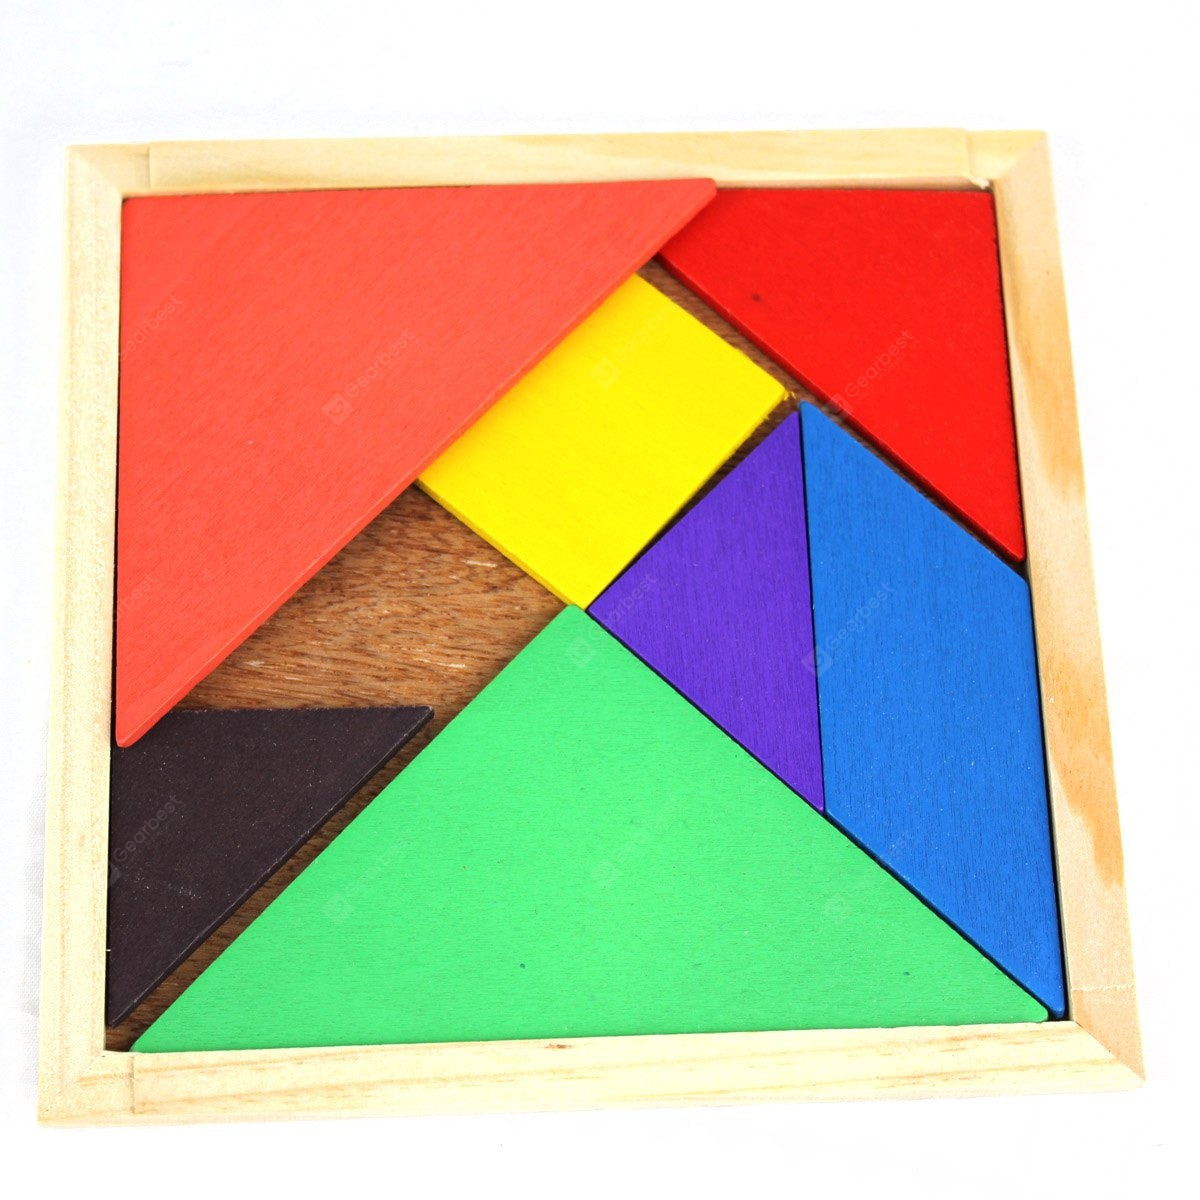 Educational Wooden Tangram Toy Simple Jigsaw Puzzle For Animal Boat Human concernant Tangram Simple